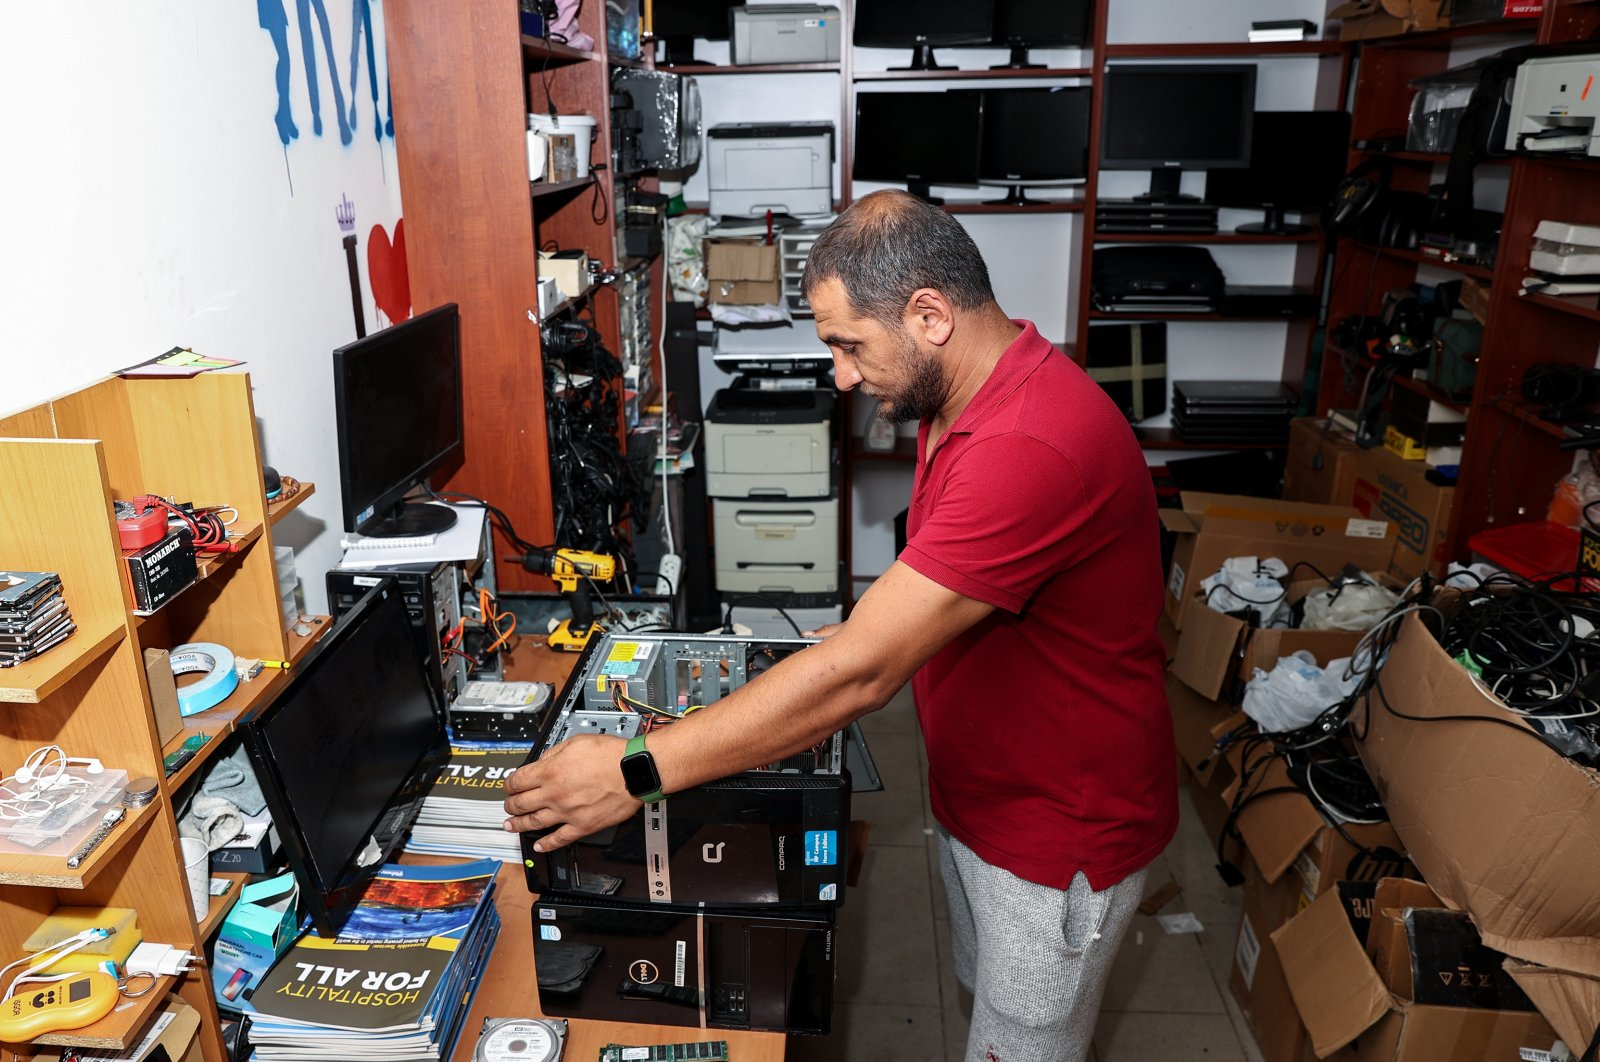 A worker fixes old computers donated to the social startup, in Istanbul, Turkey, July 27, 2021. (AA PHOTO)